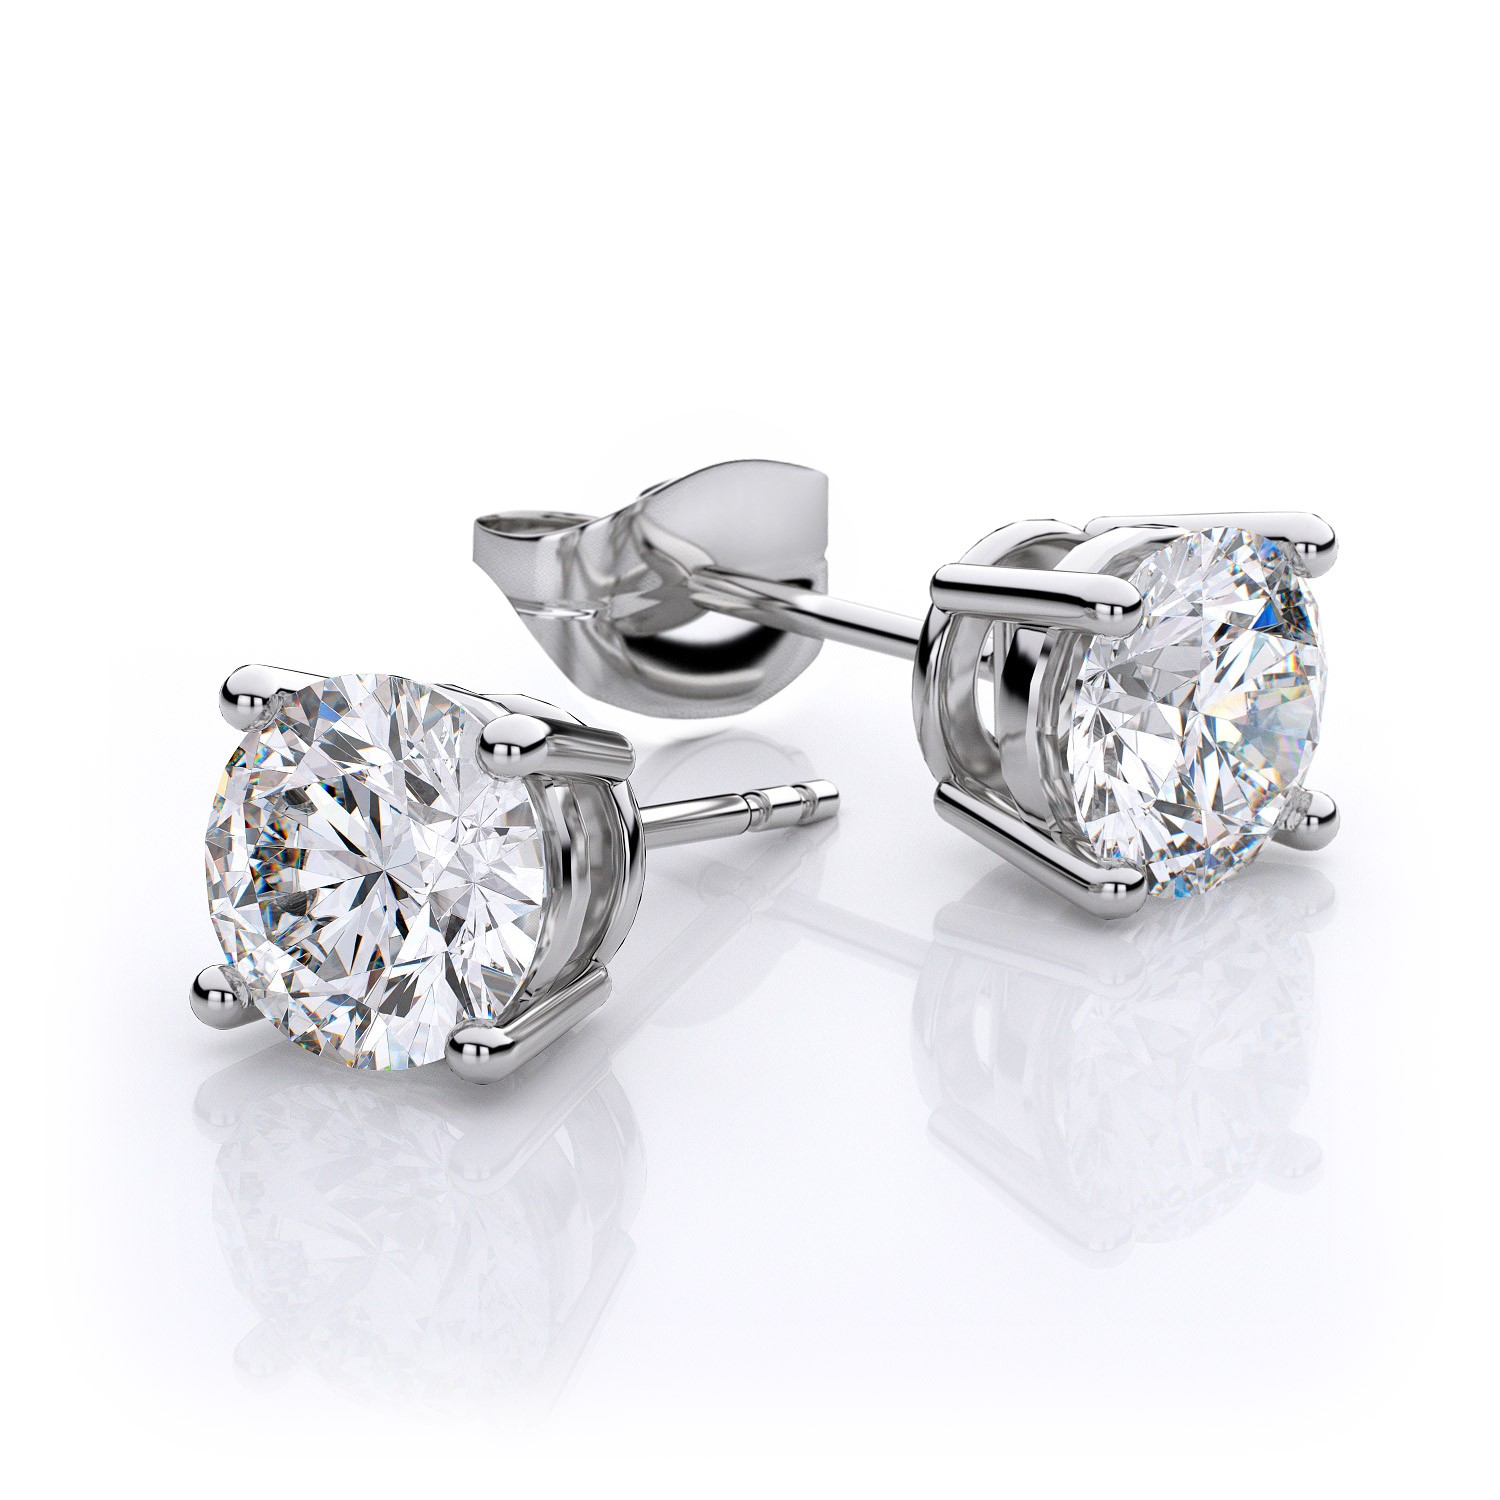 0.70 ctw round diamond stud earrings in 14k white gold vs h ujewtwk